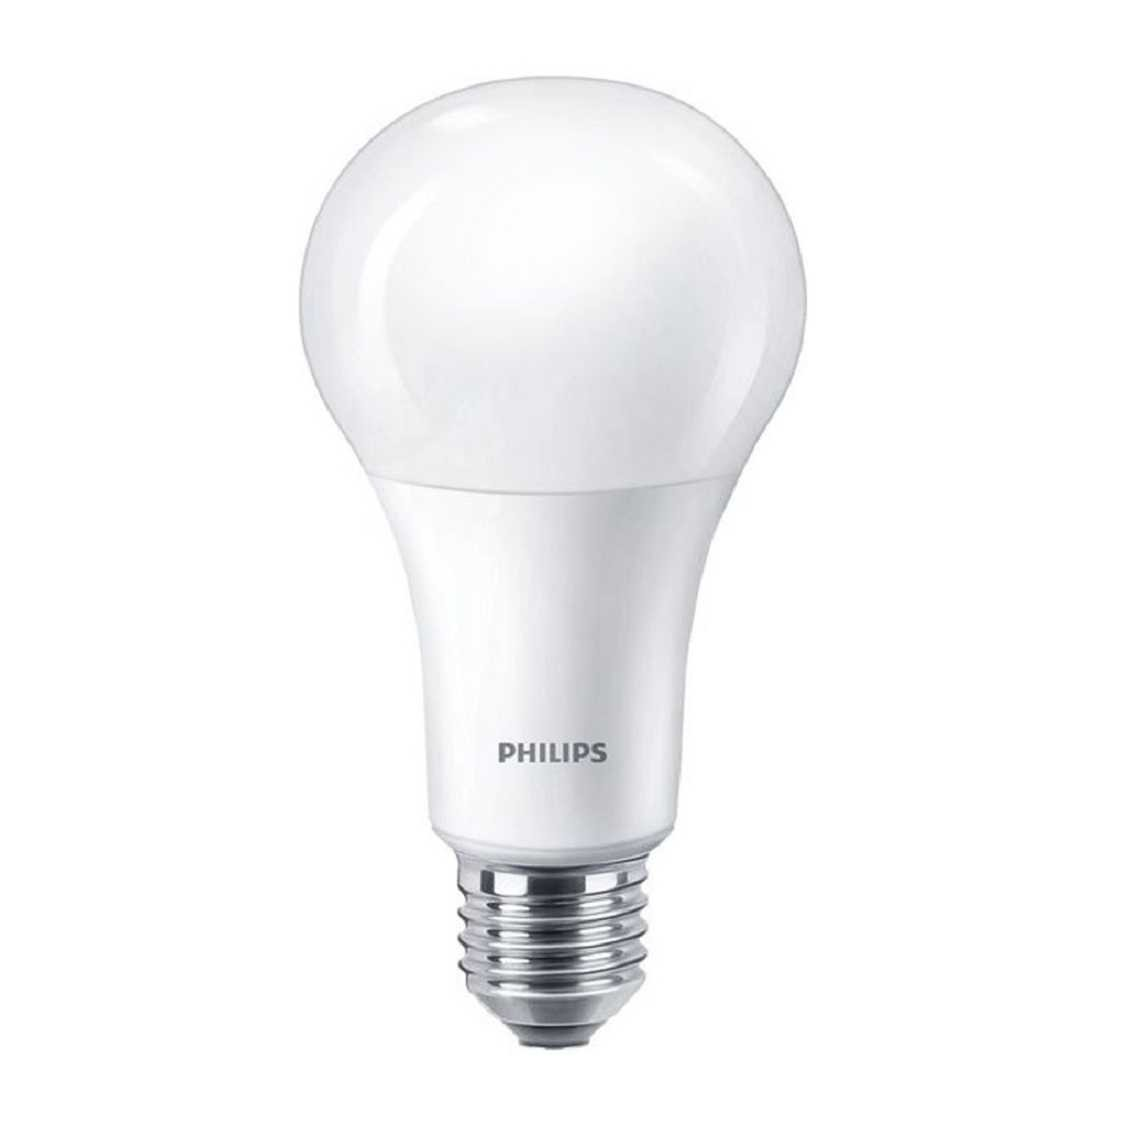 Philips LED E27 13.5W